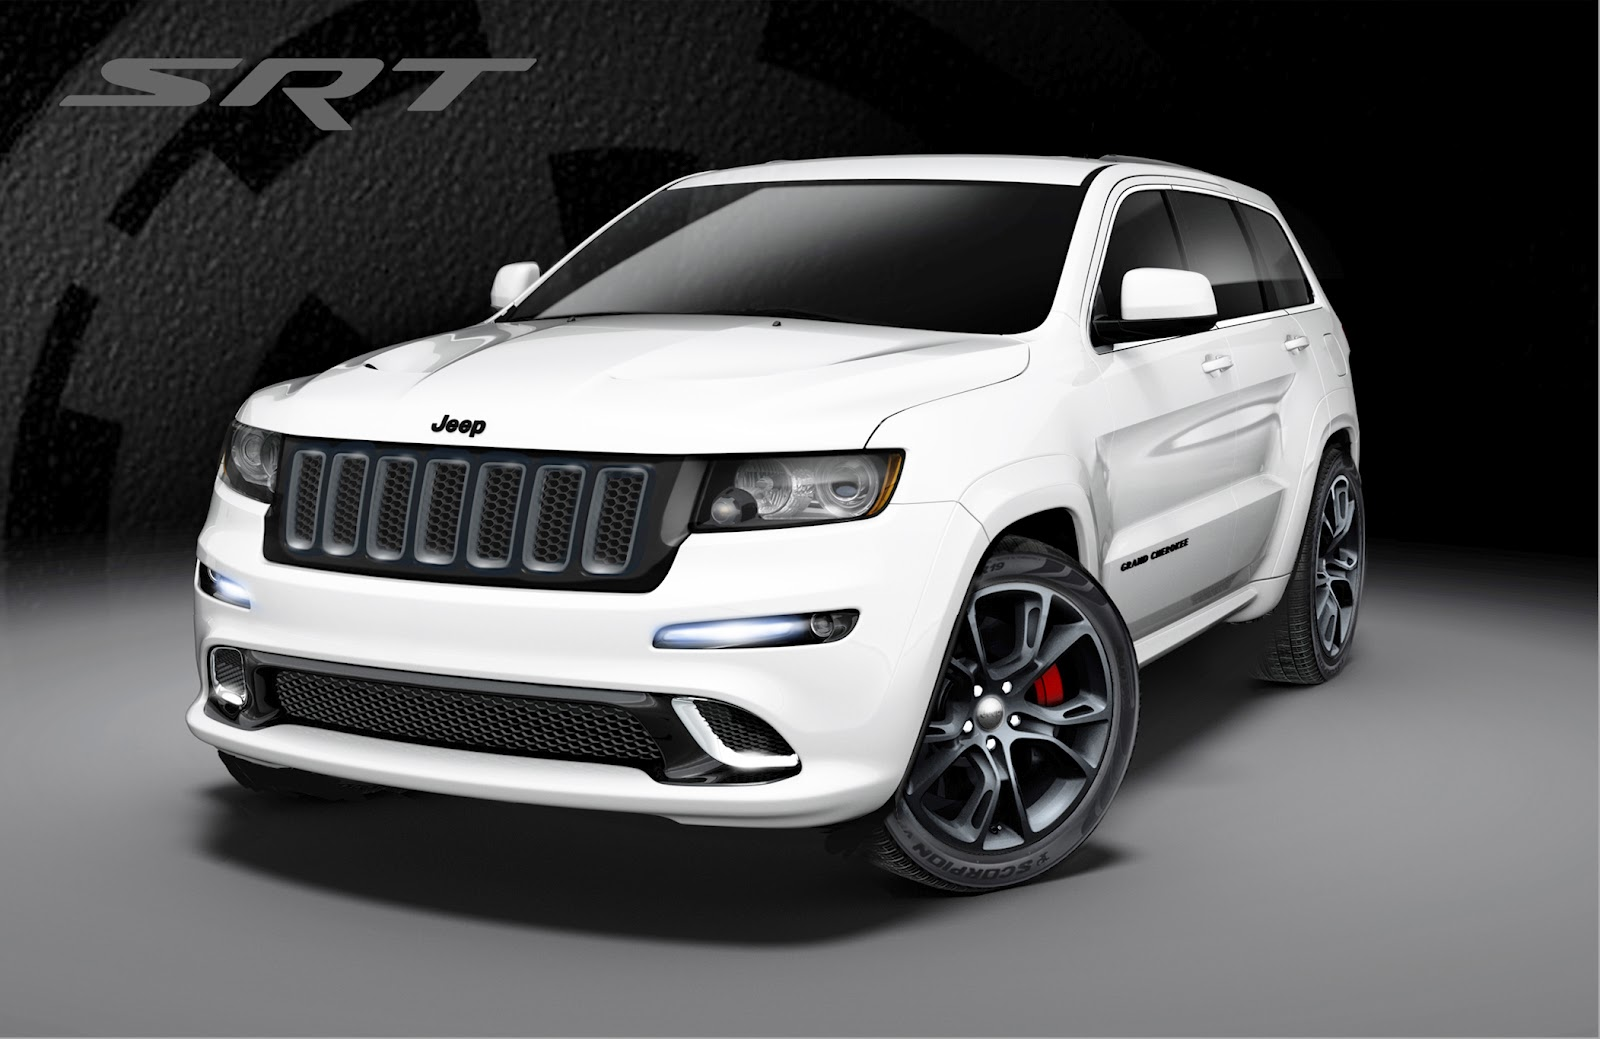 2013 jeep grand cherokee srt8 deux nouvelles couleurs. Black Bedroom Furniture Sets. Home Design Ideas